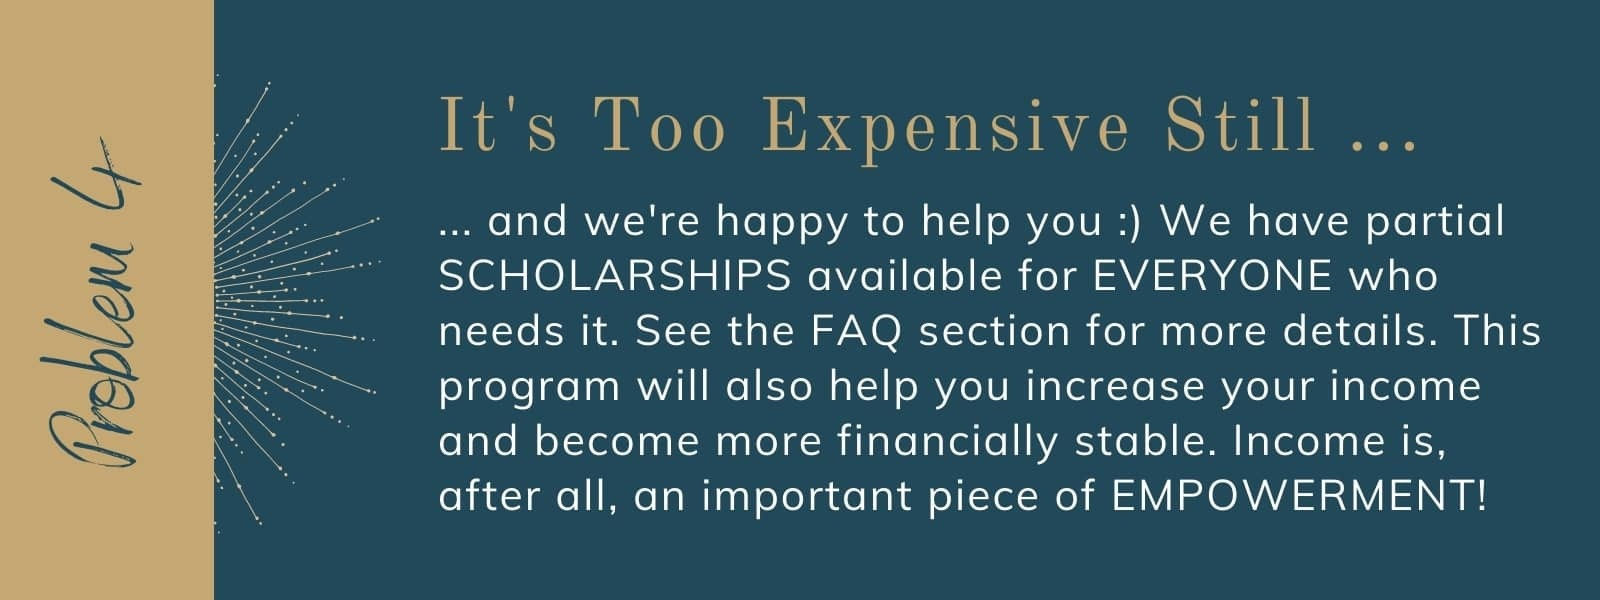 ... and we're happy to help you :) We have partial SCHOLARSHIPS available for EVERYONE who needs it. See the FAQ section for more details. This program will also help you increase your income and become more financially stable. Income is, after all, an important piece of EMPOWERMENT!